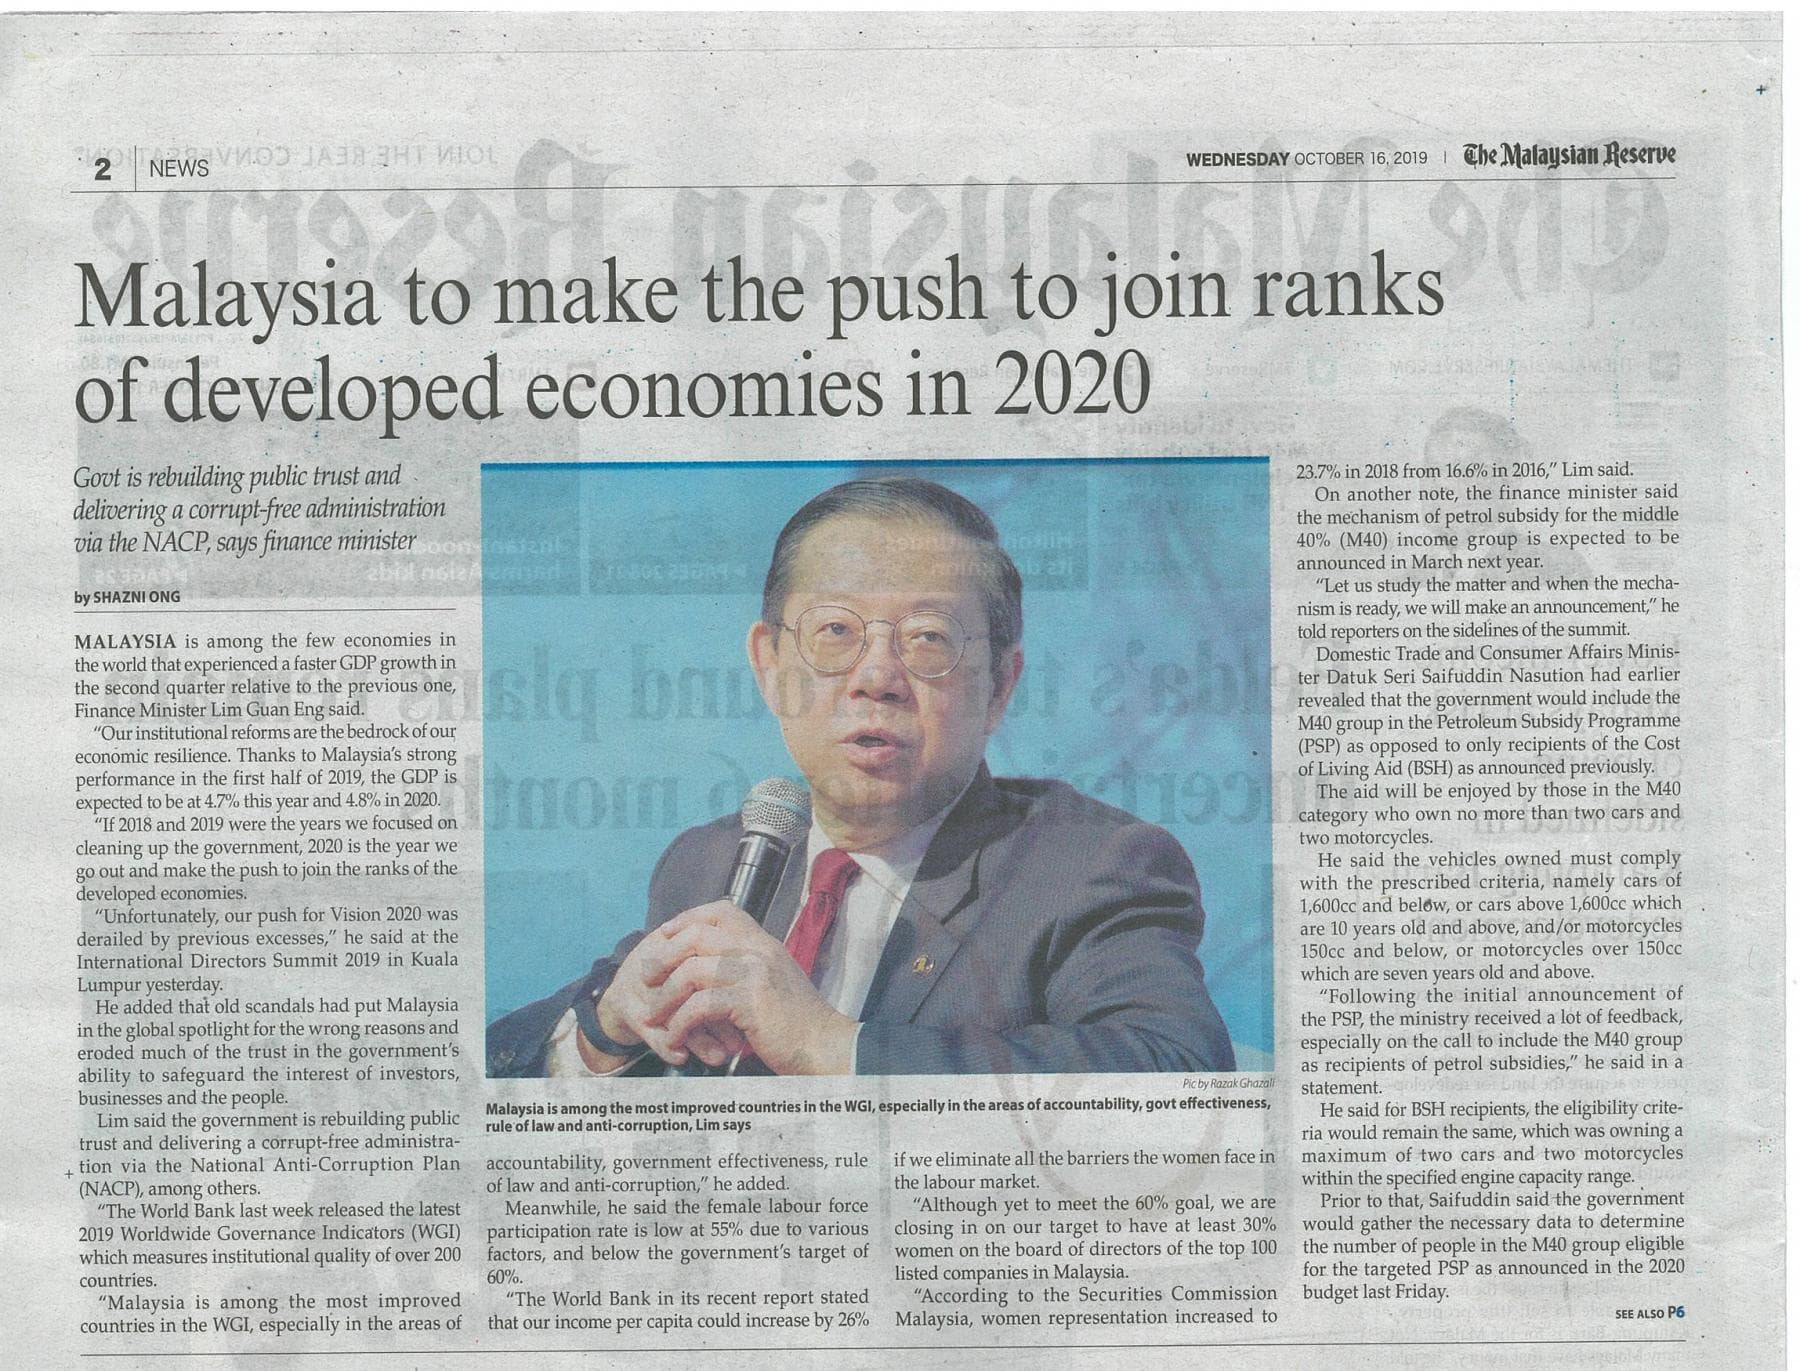 The Malaysian Reserve Malaysia to make the push to join ranks of developed economies in 2020 16 Oct 2019